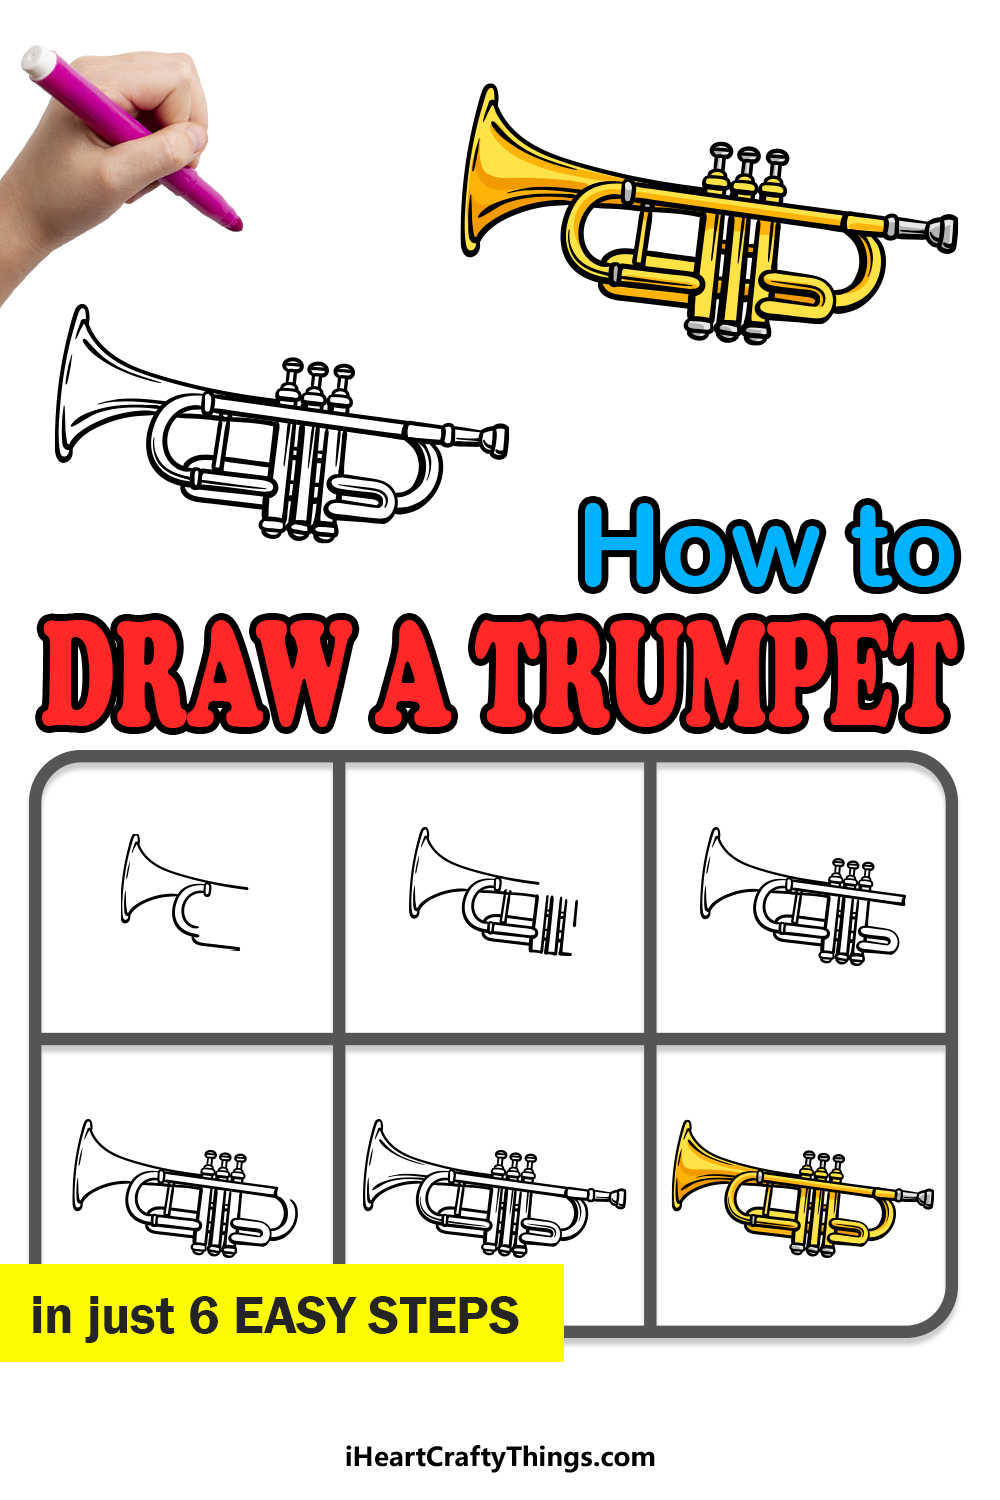 how to draw a trumpet in 6 easy steps